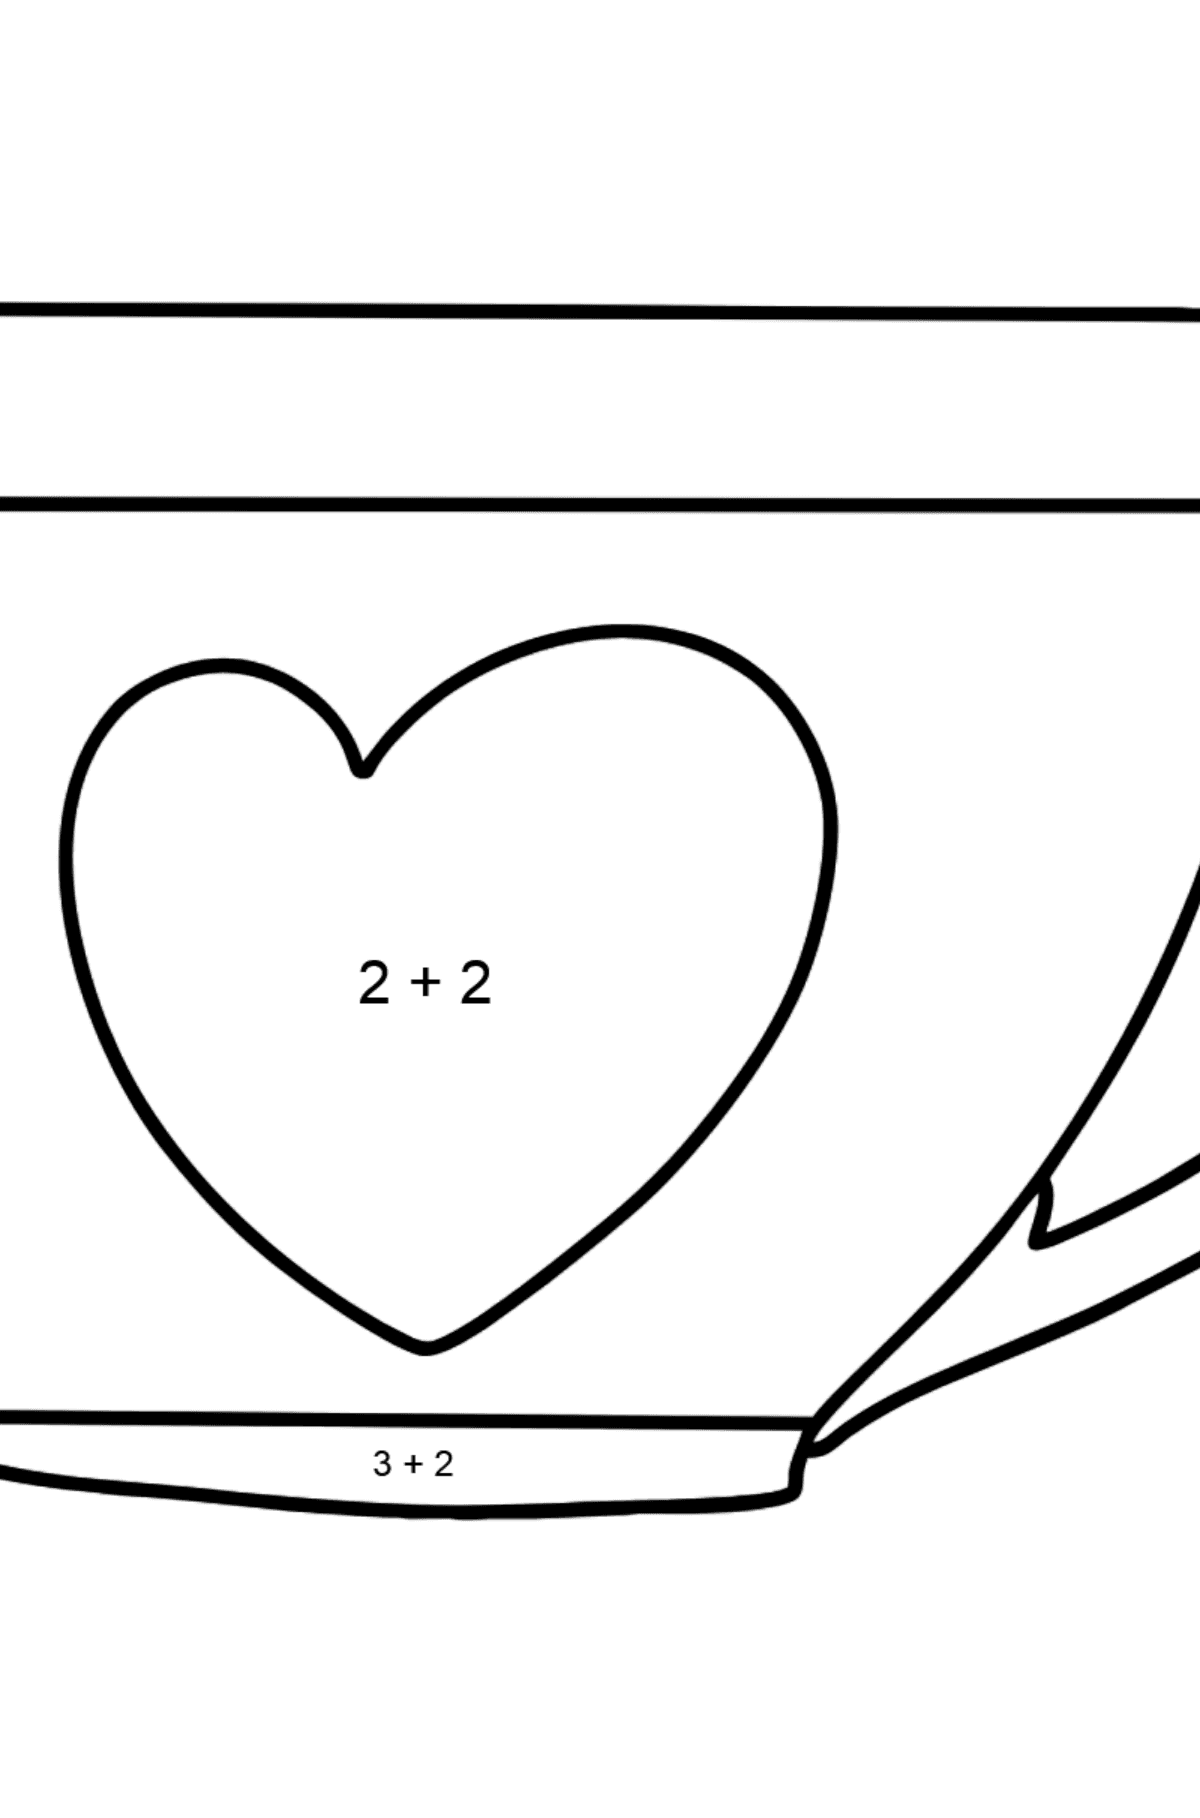 Cup coloring page - Math Coloring - Addition for Kids